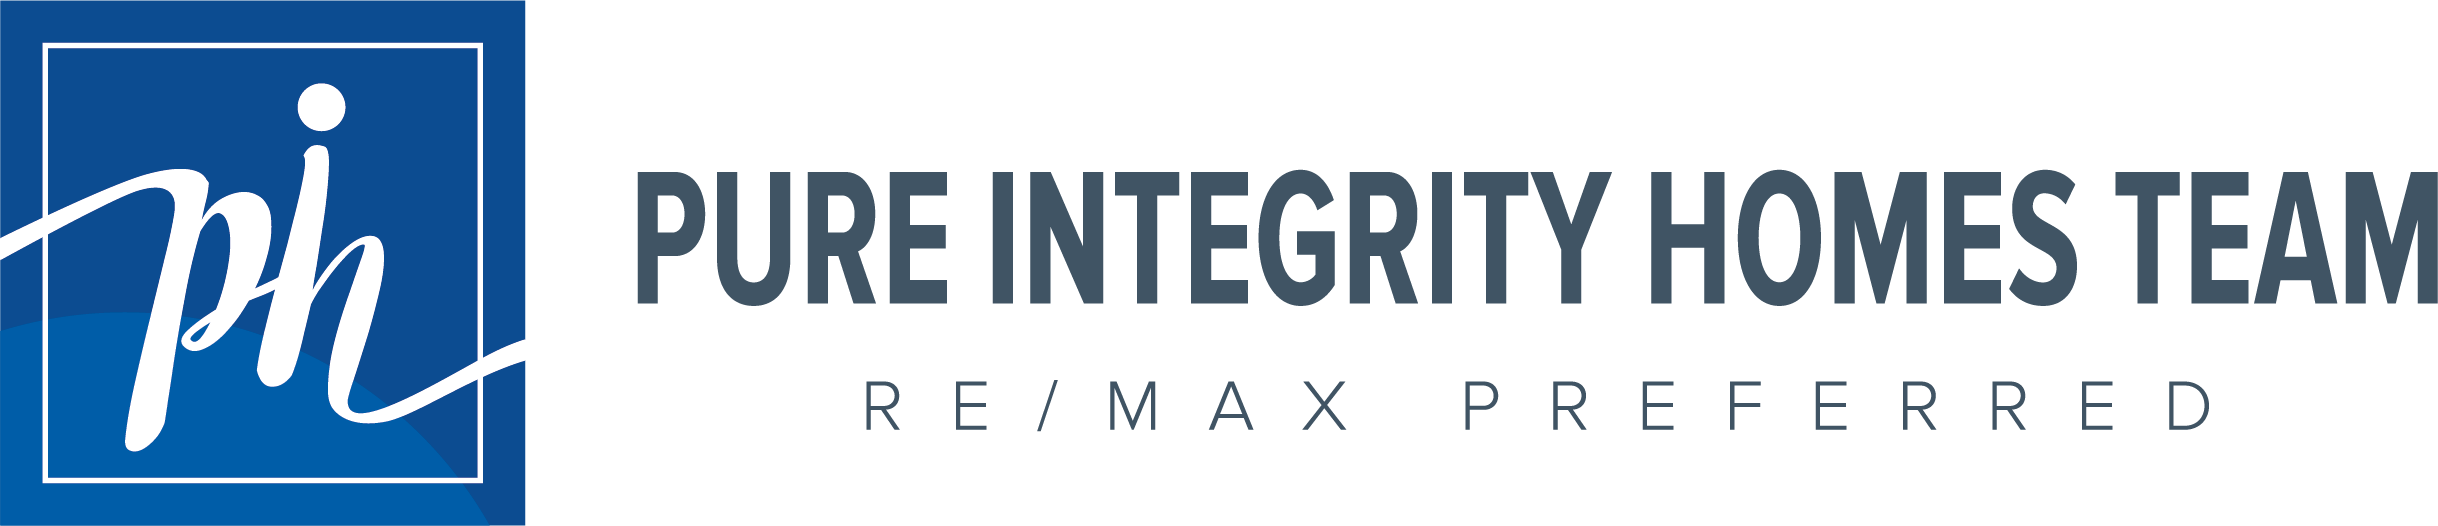 Pure Integrity Homes Team | RE/MAX Preferred